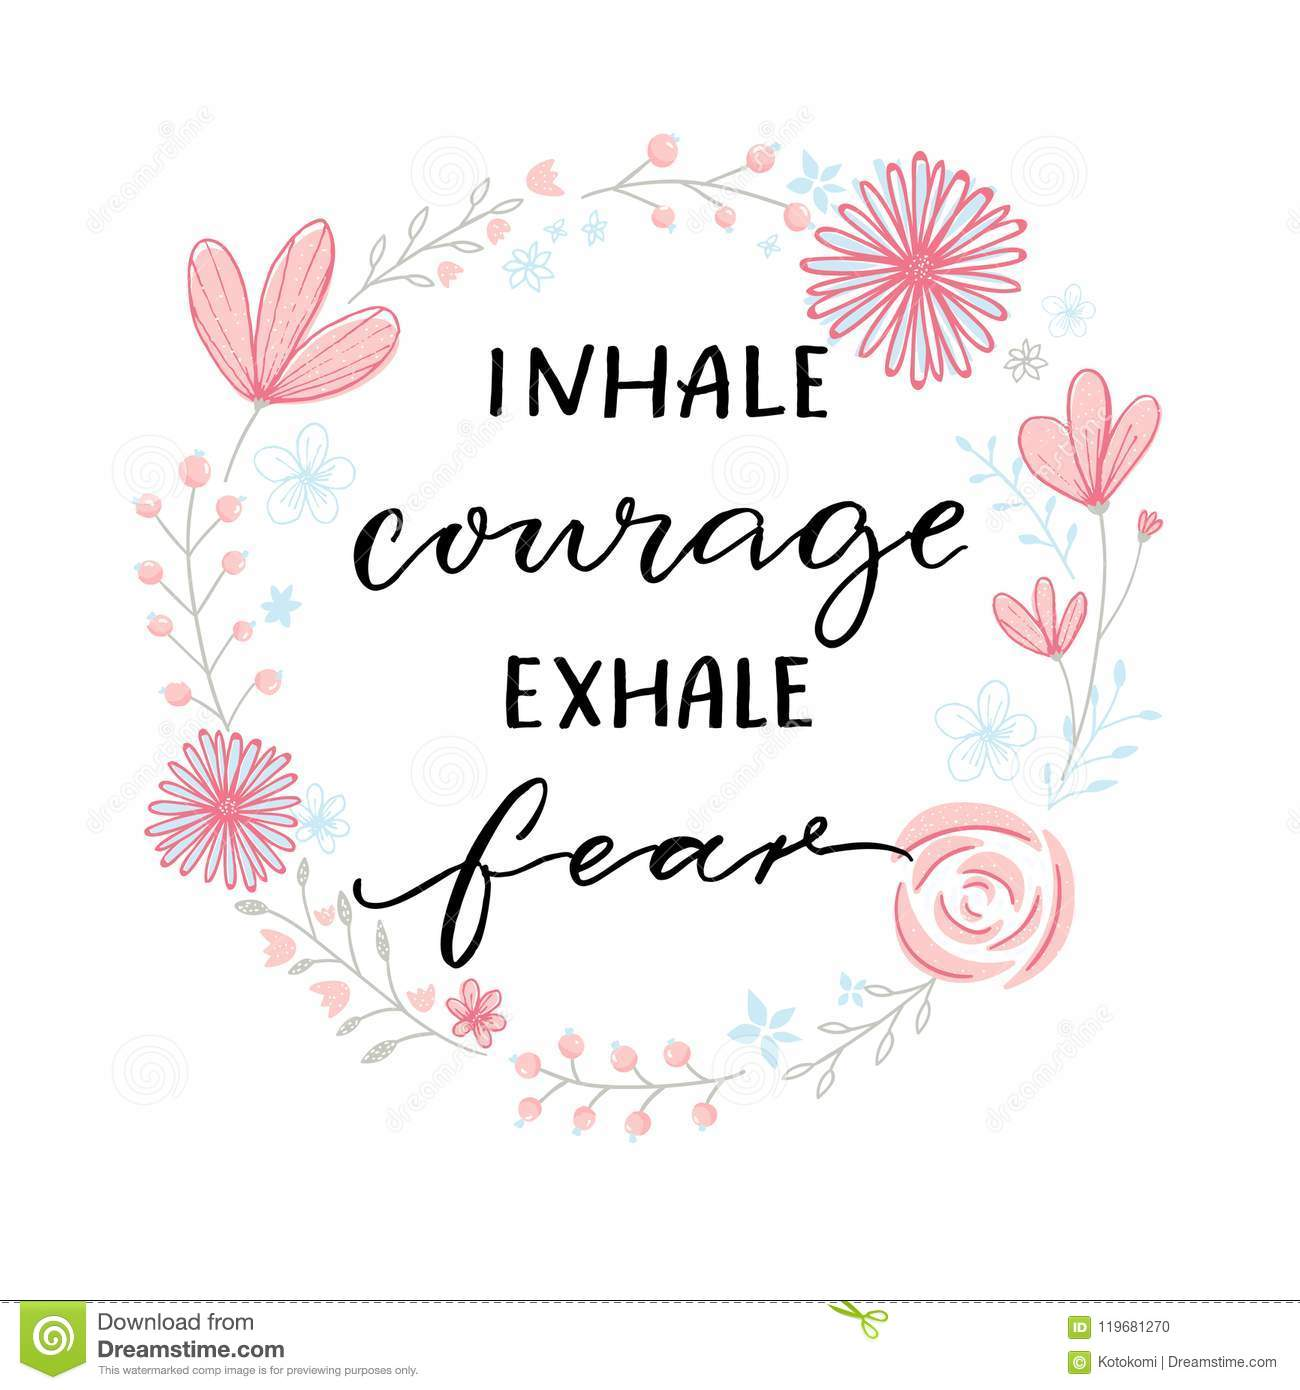 Inhale courage exhale fear. Inspiration support saying, motivational quote. Modern calligraphy in floral wreath frame.